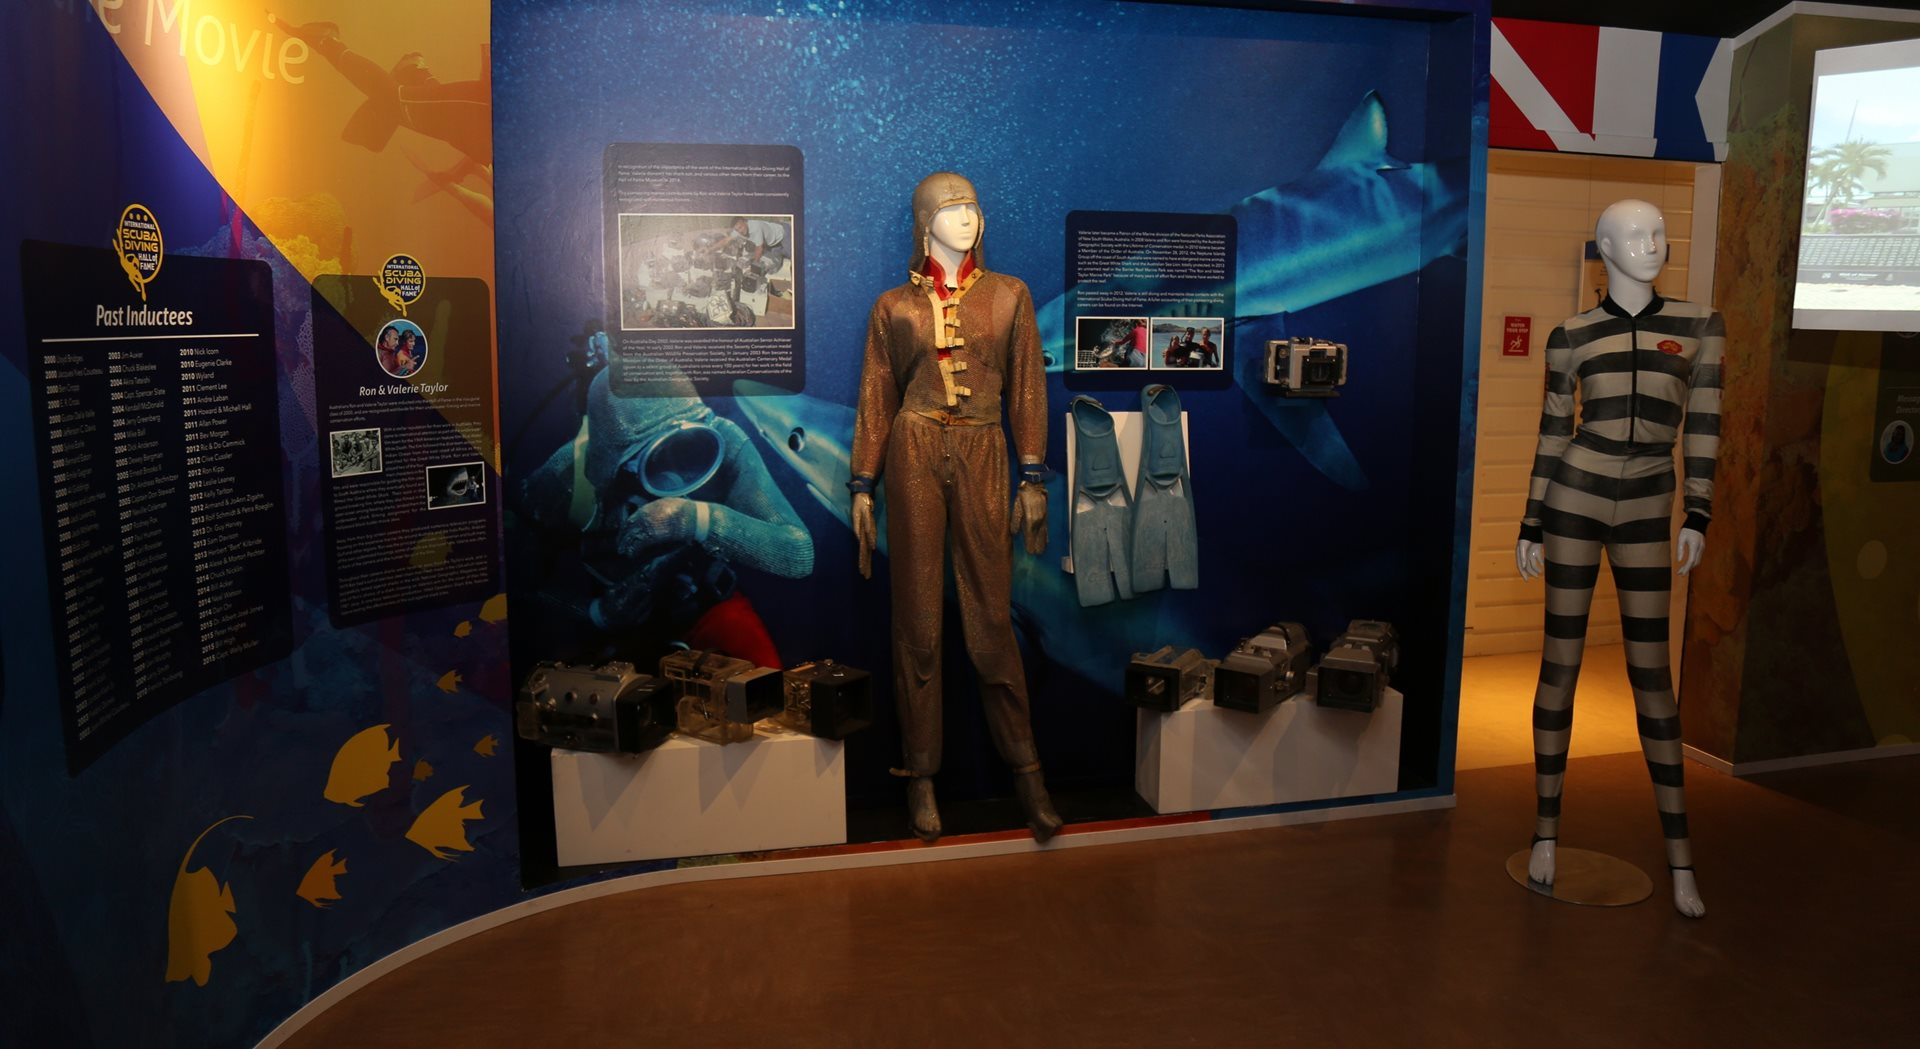 LEGENDS OF SCUBA DIVING AT THE CAYMAN ISLANDS NATIONAL MUSEUM